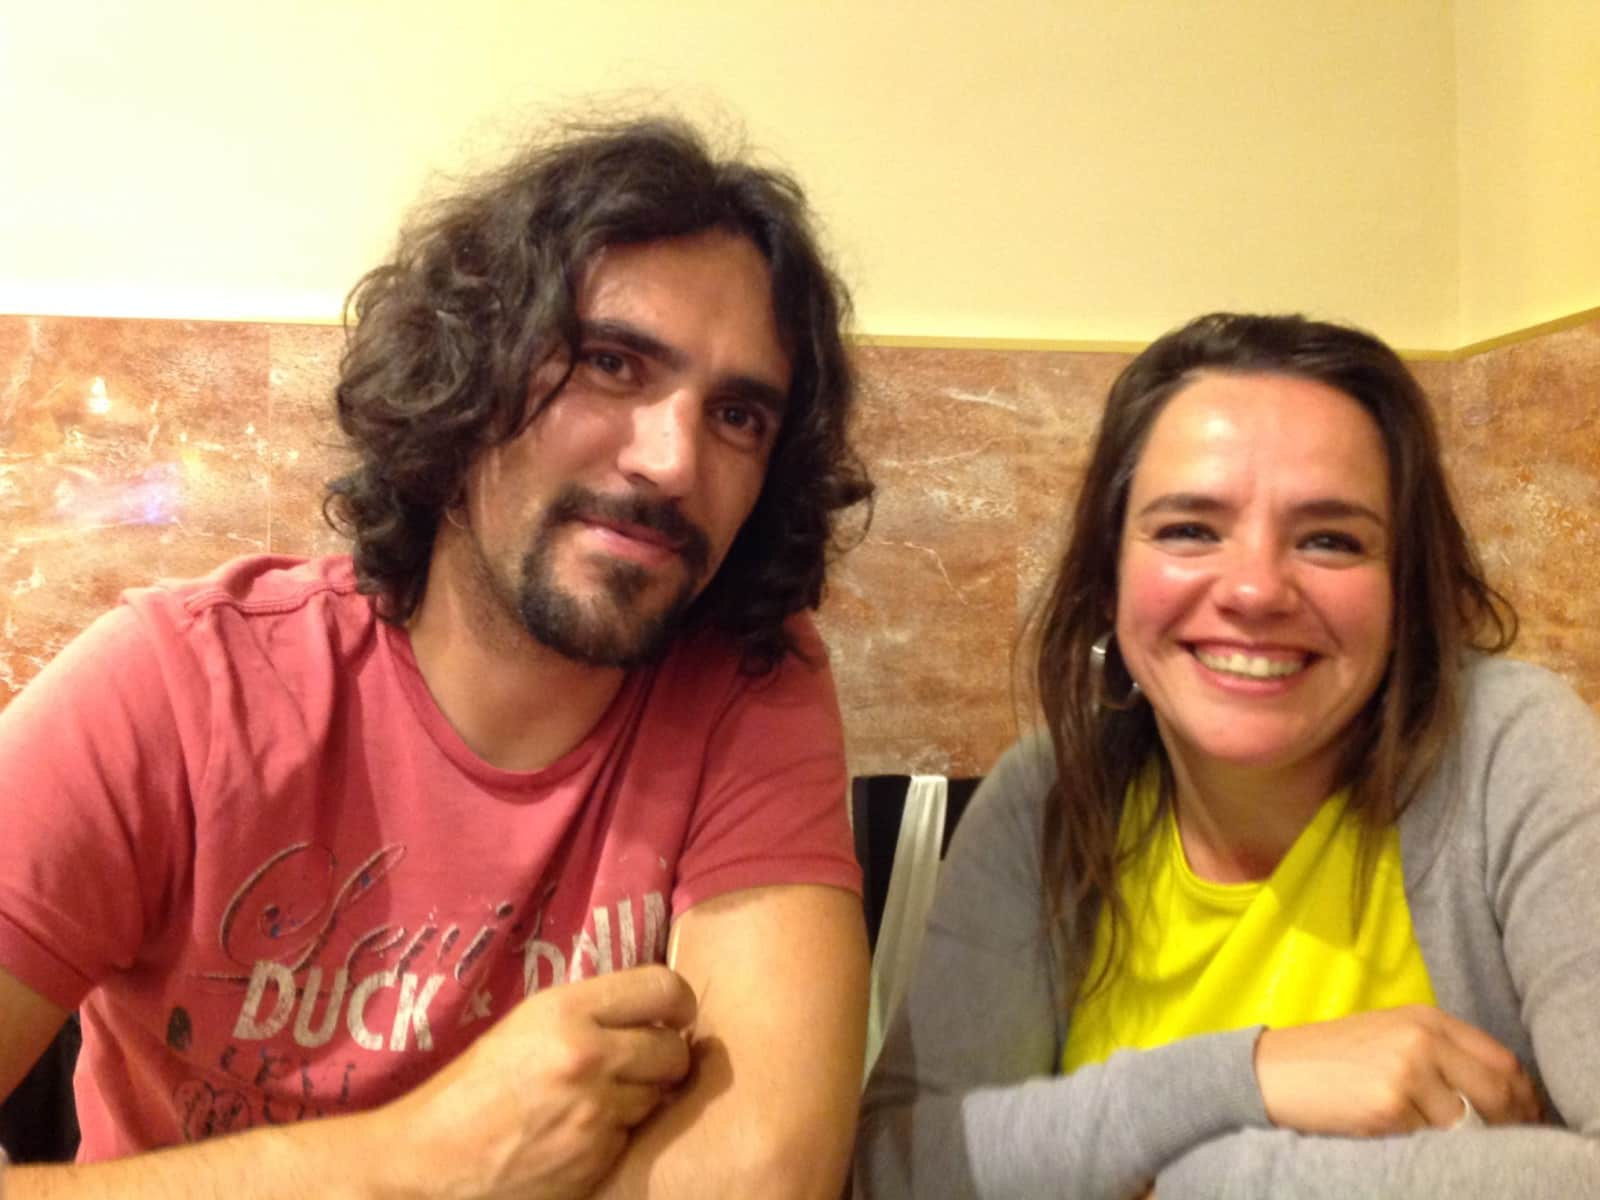 Jaime & Beatriz from Portocolom, Spain